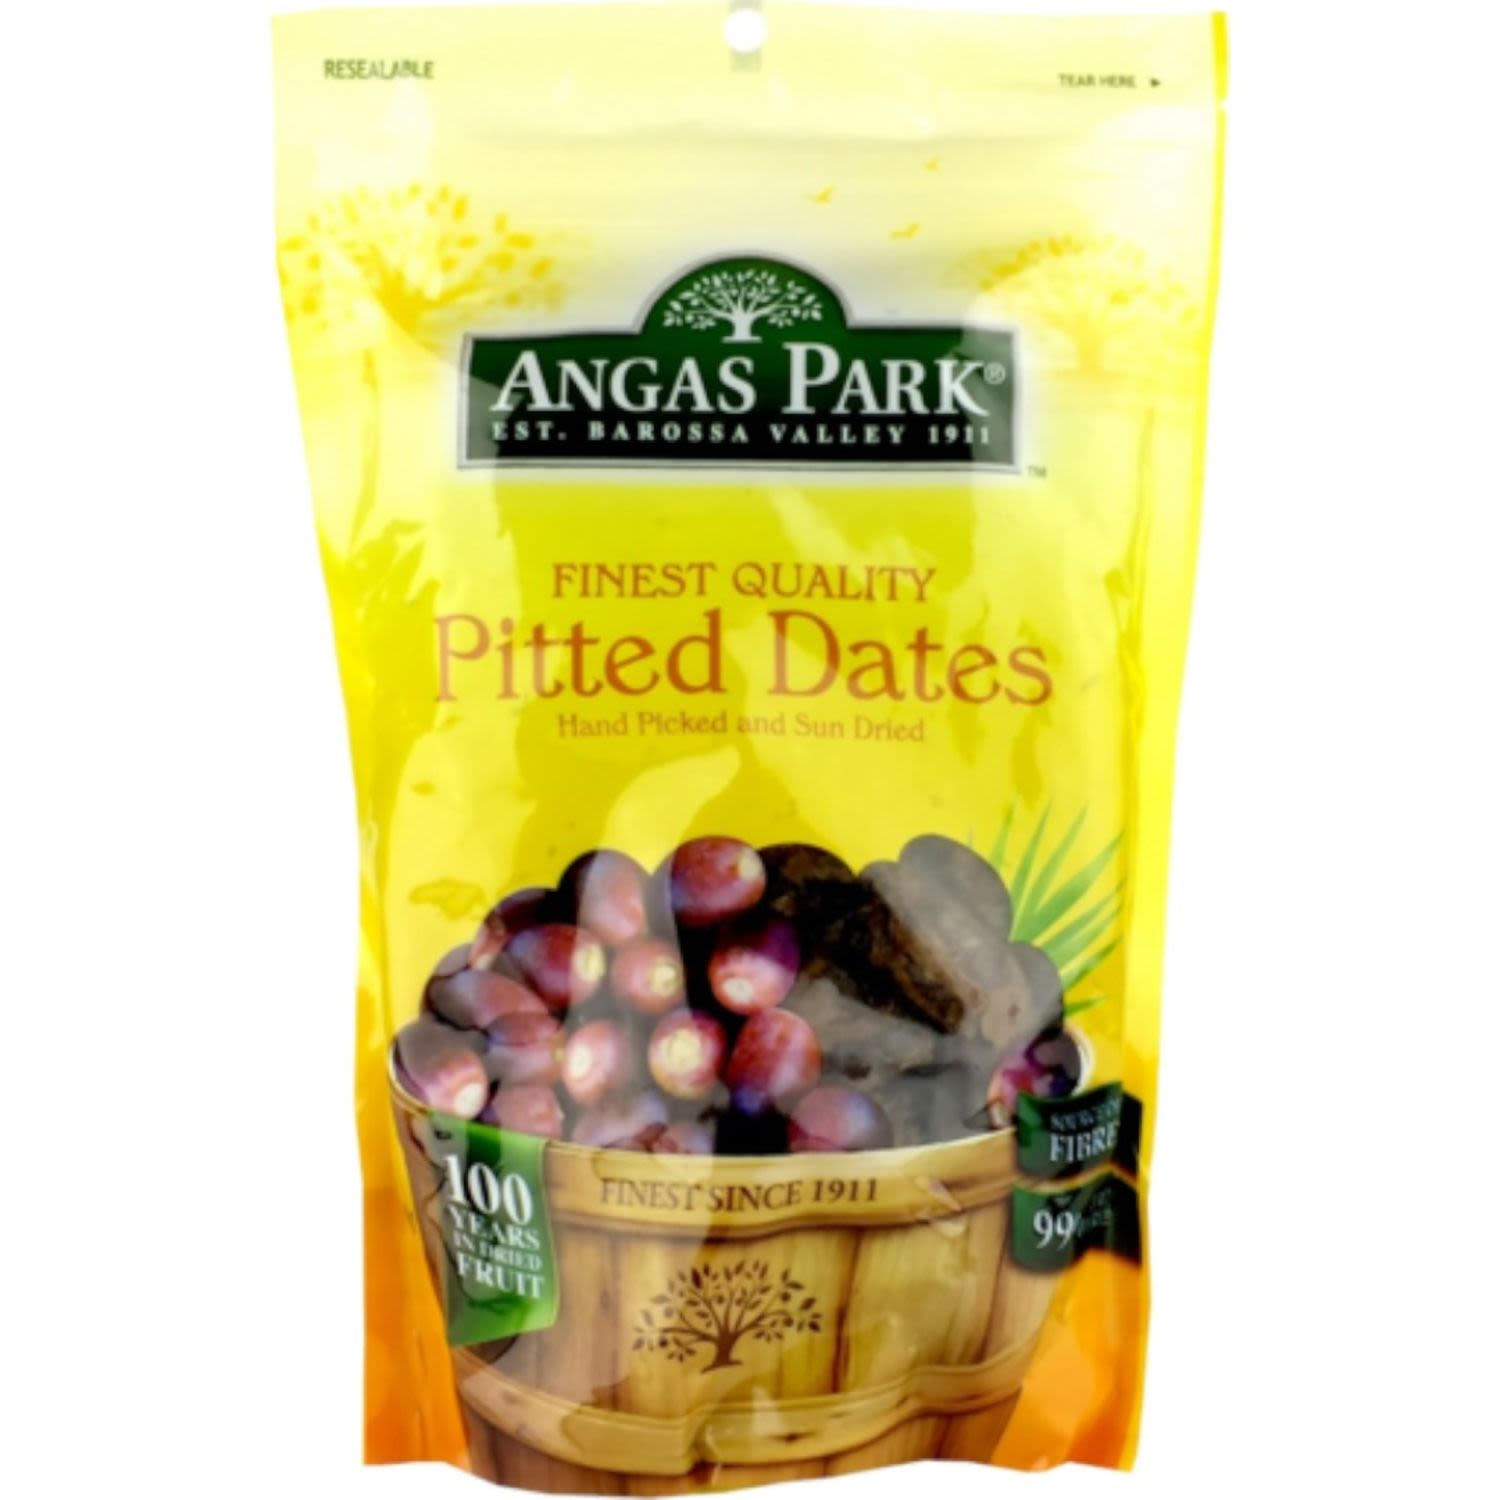 Angas Park Pitted Dates, 500 Gram